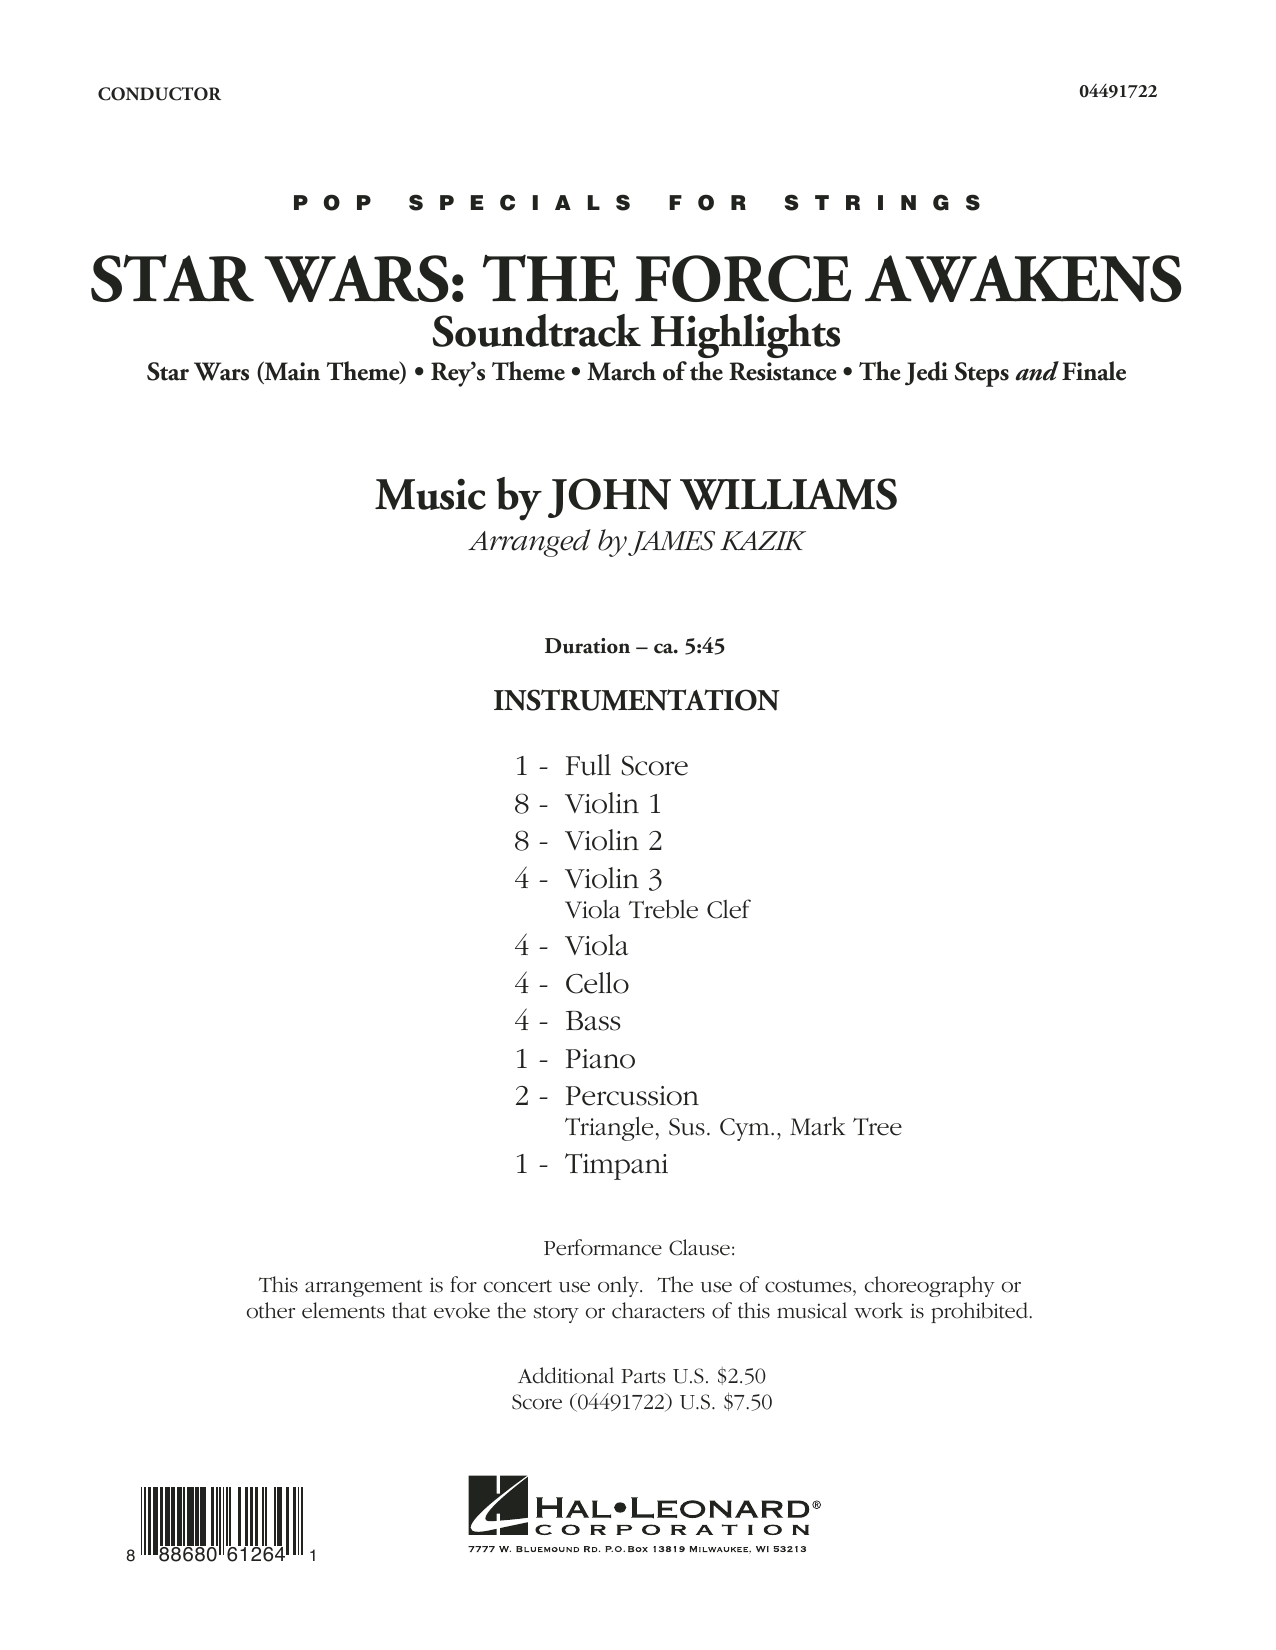 John Williams - Star Wars: The Force Awakens Soundtrack Highlights - Conductor Score (Full Score)